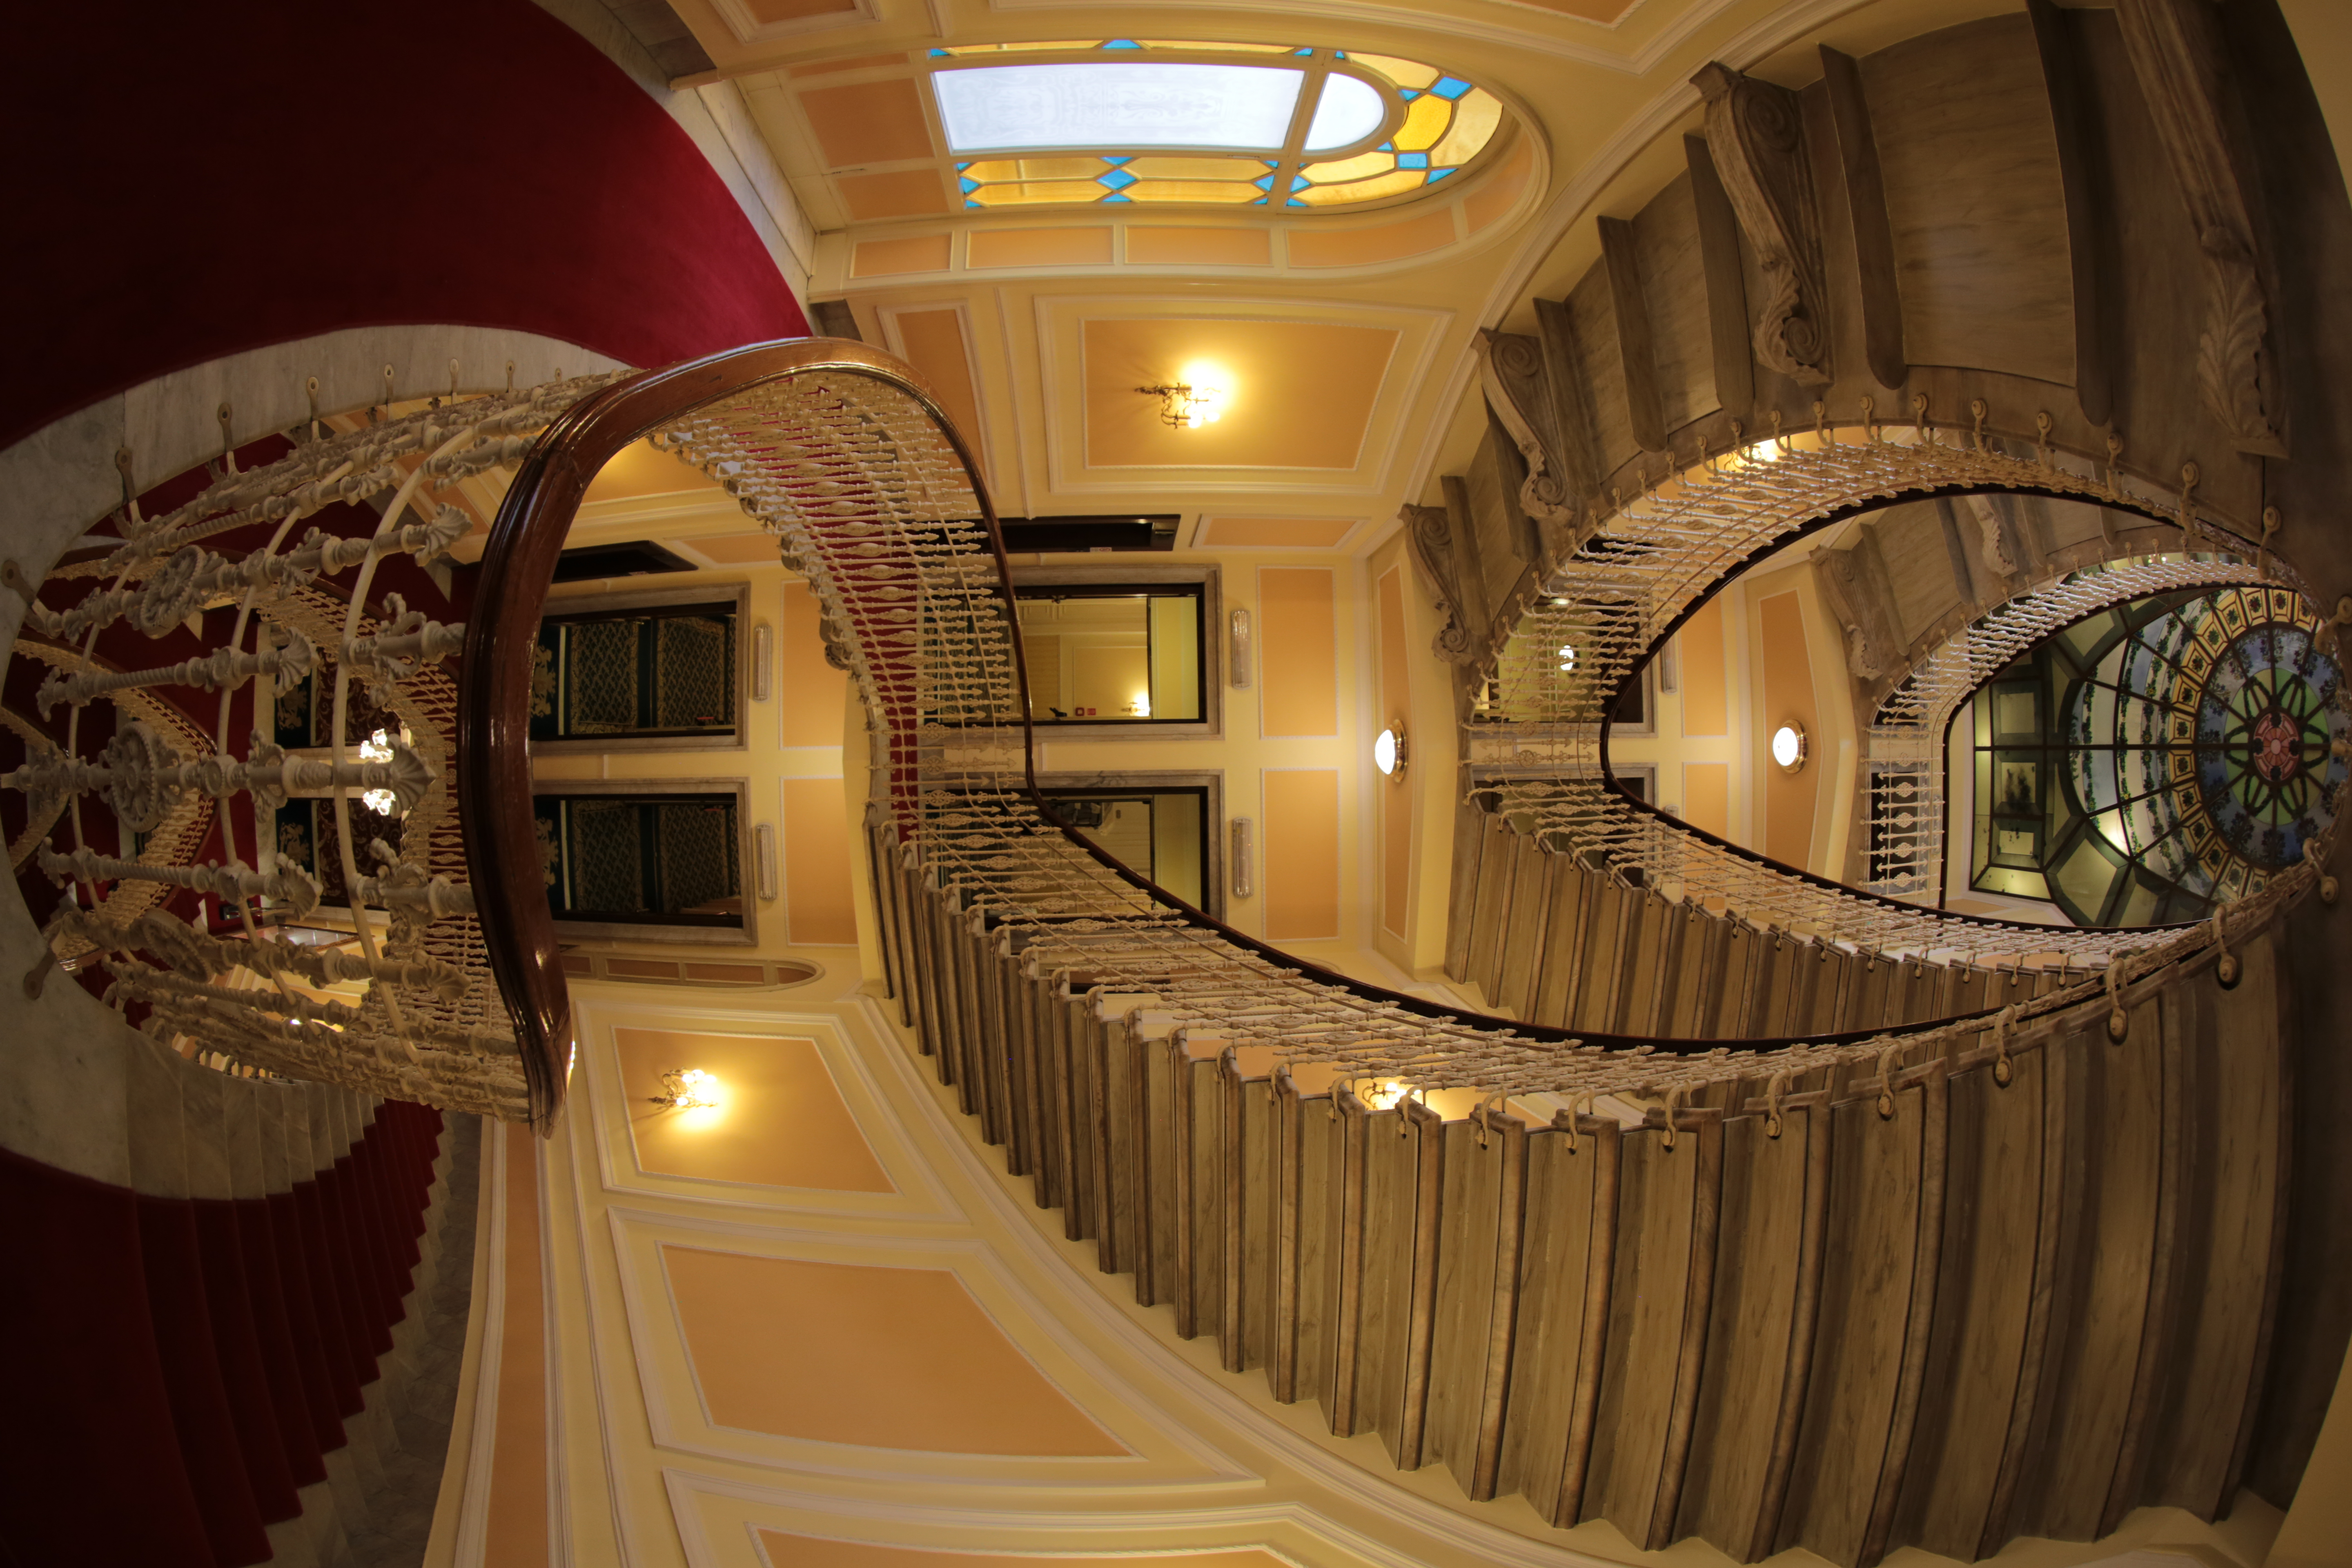 File Hotel Bristol Palace Genoa Italy Photographed In 2016 258a8229 Jpg